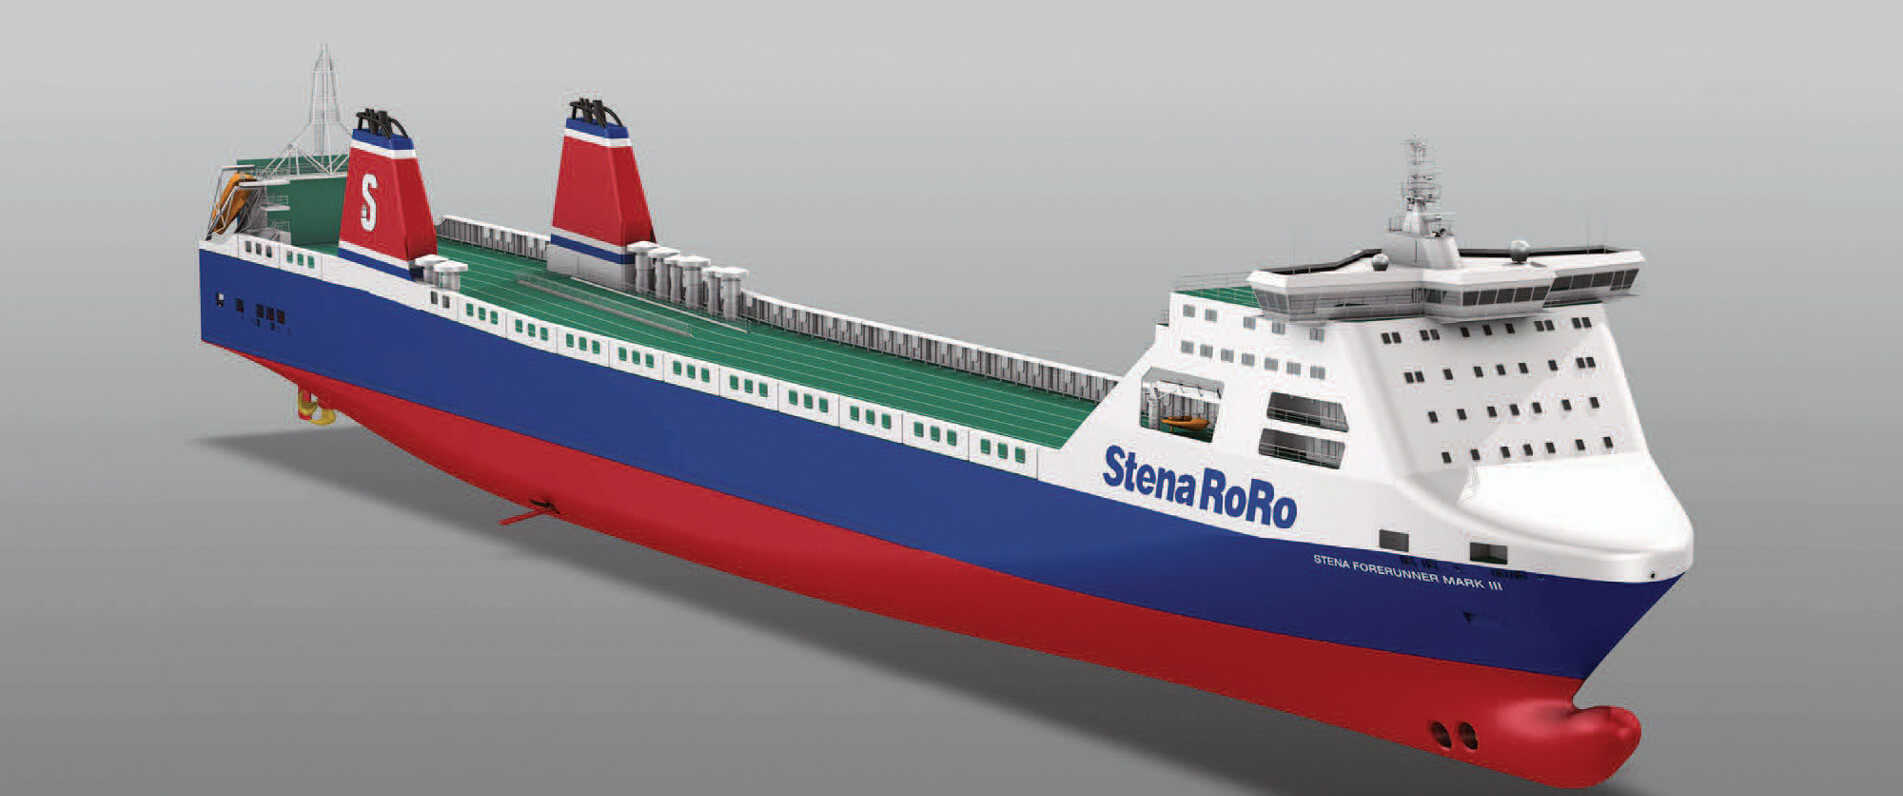 Basic Design of RoRo Stena Forerunner Mark III